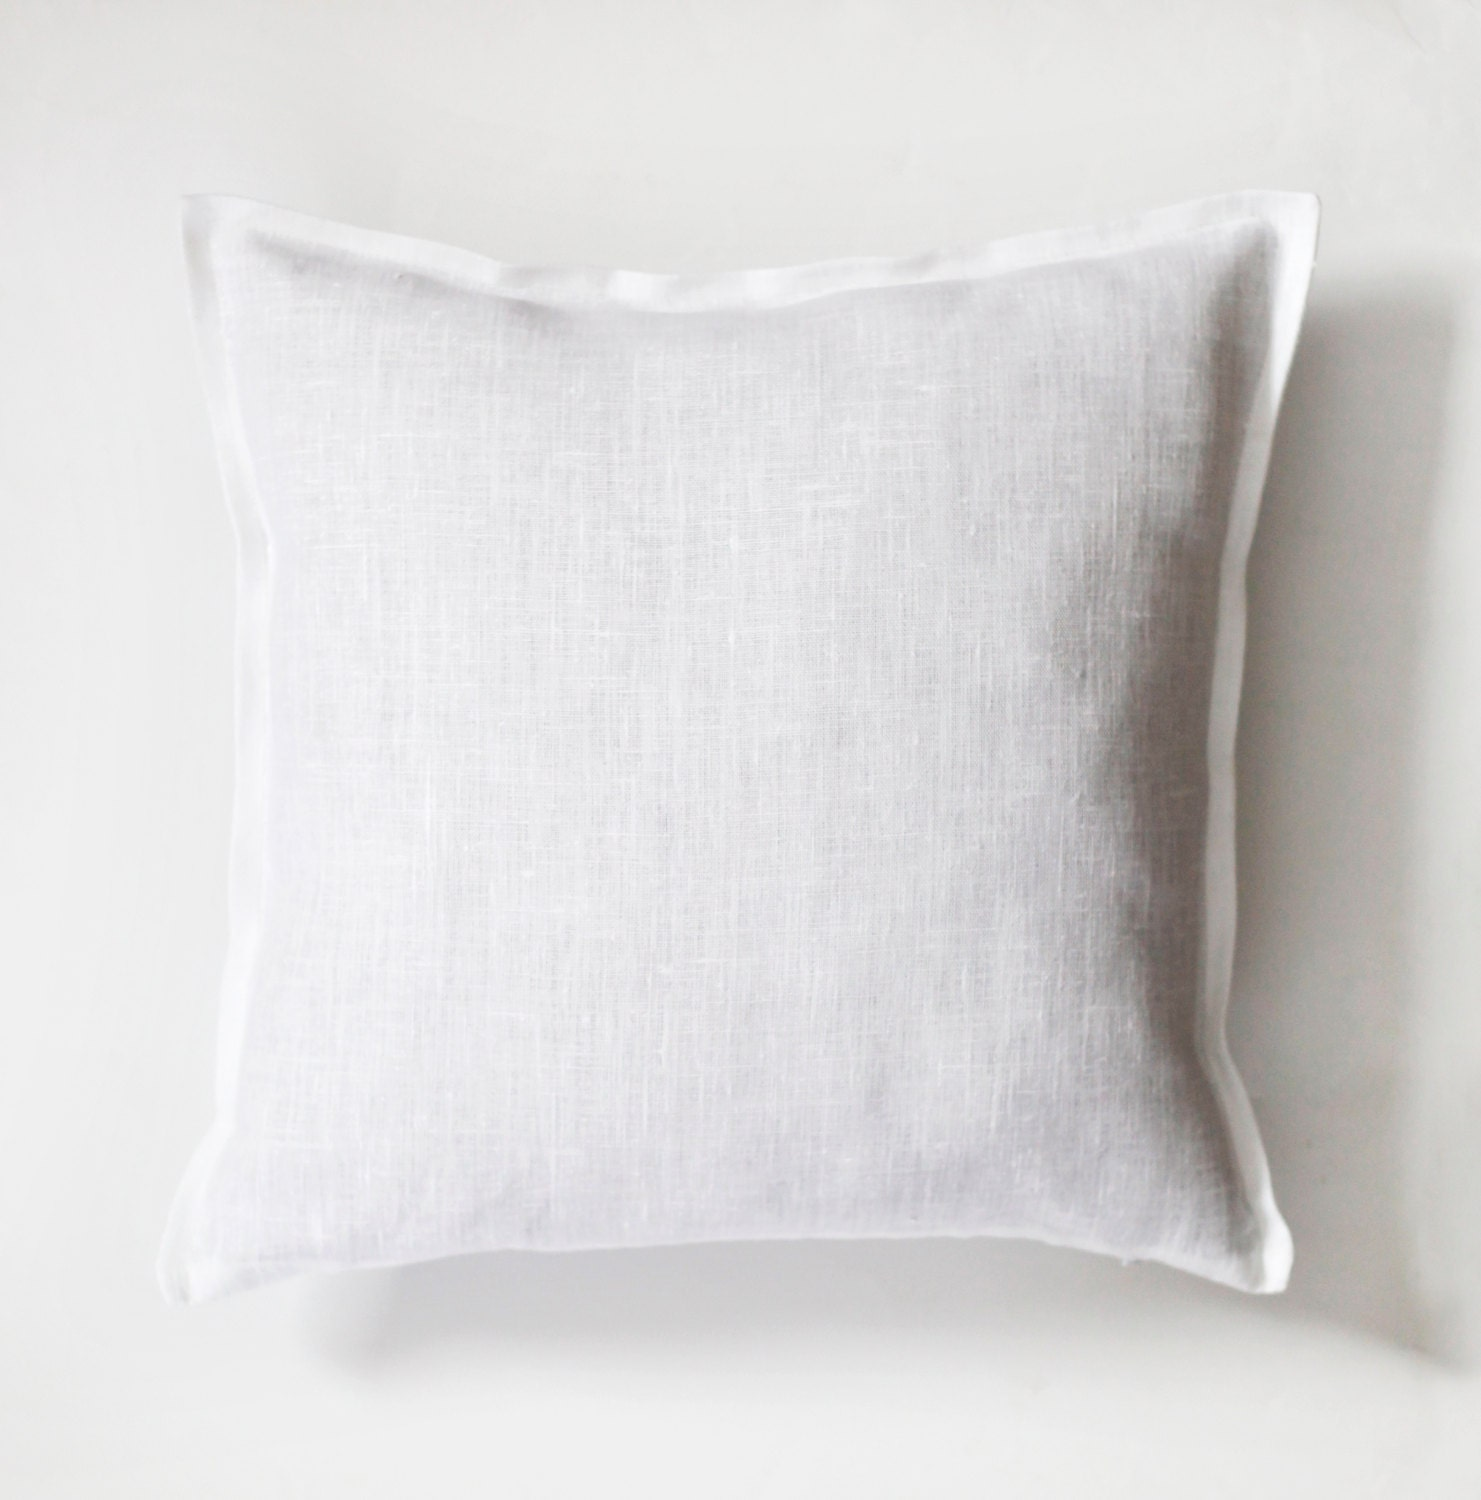 Fabric For Throw Pillow Covers : White pillow white pillow cover white natural fabric